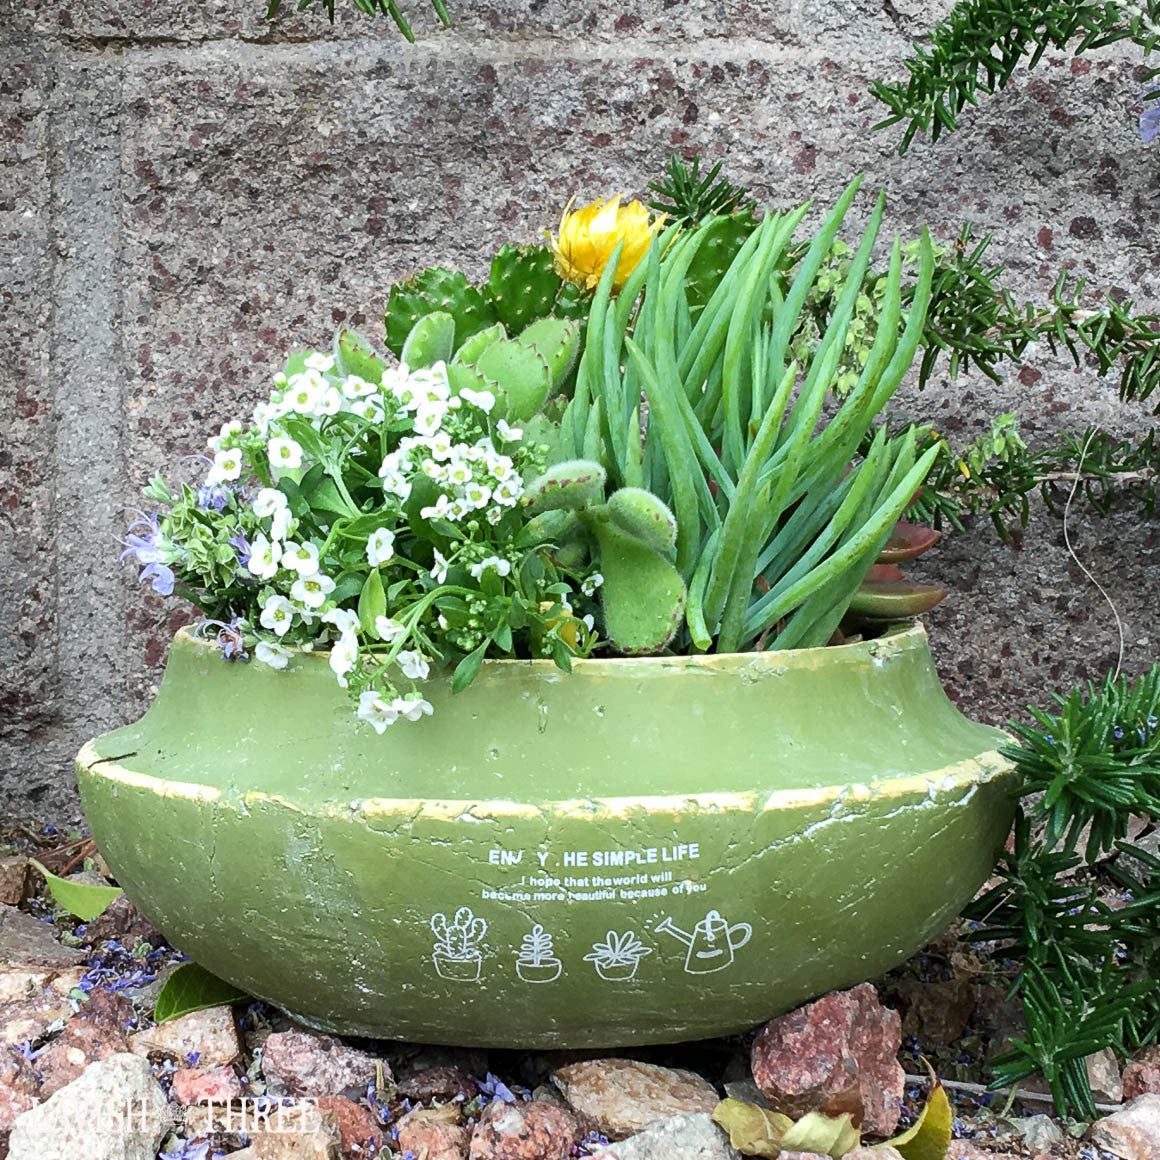 Green shallow cement planter garden pot succulent herb flower pot